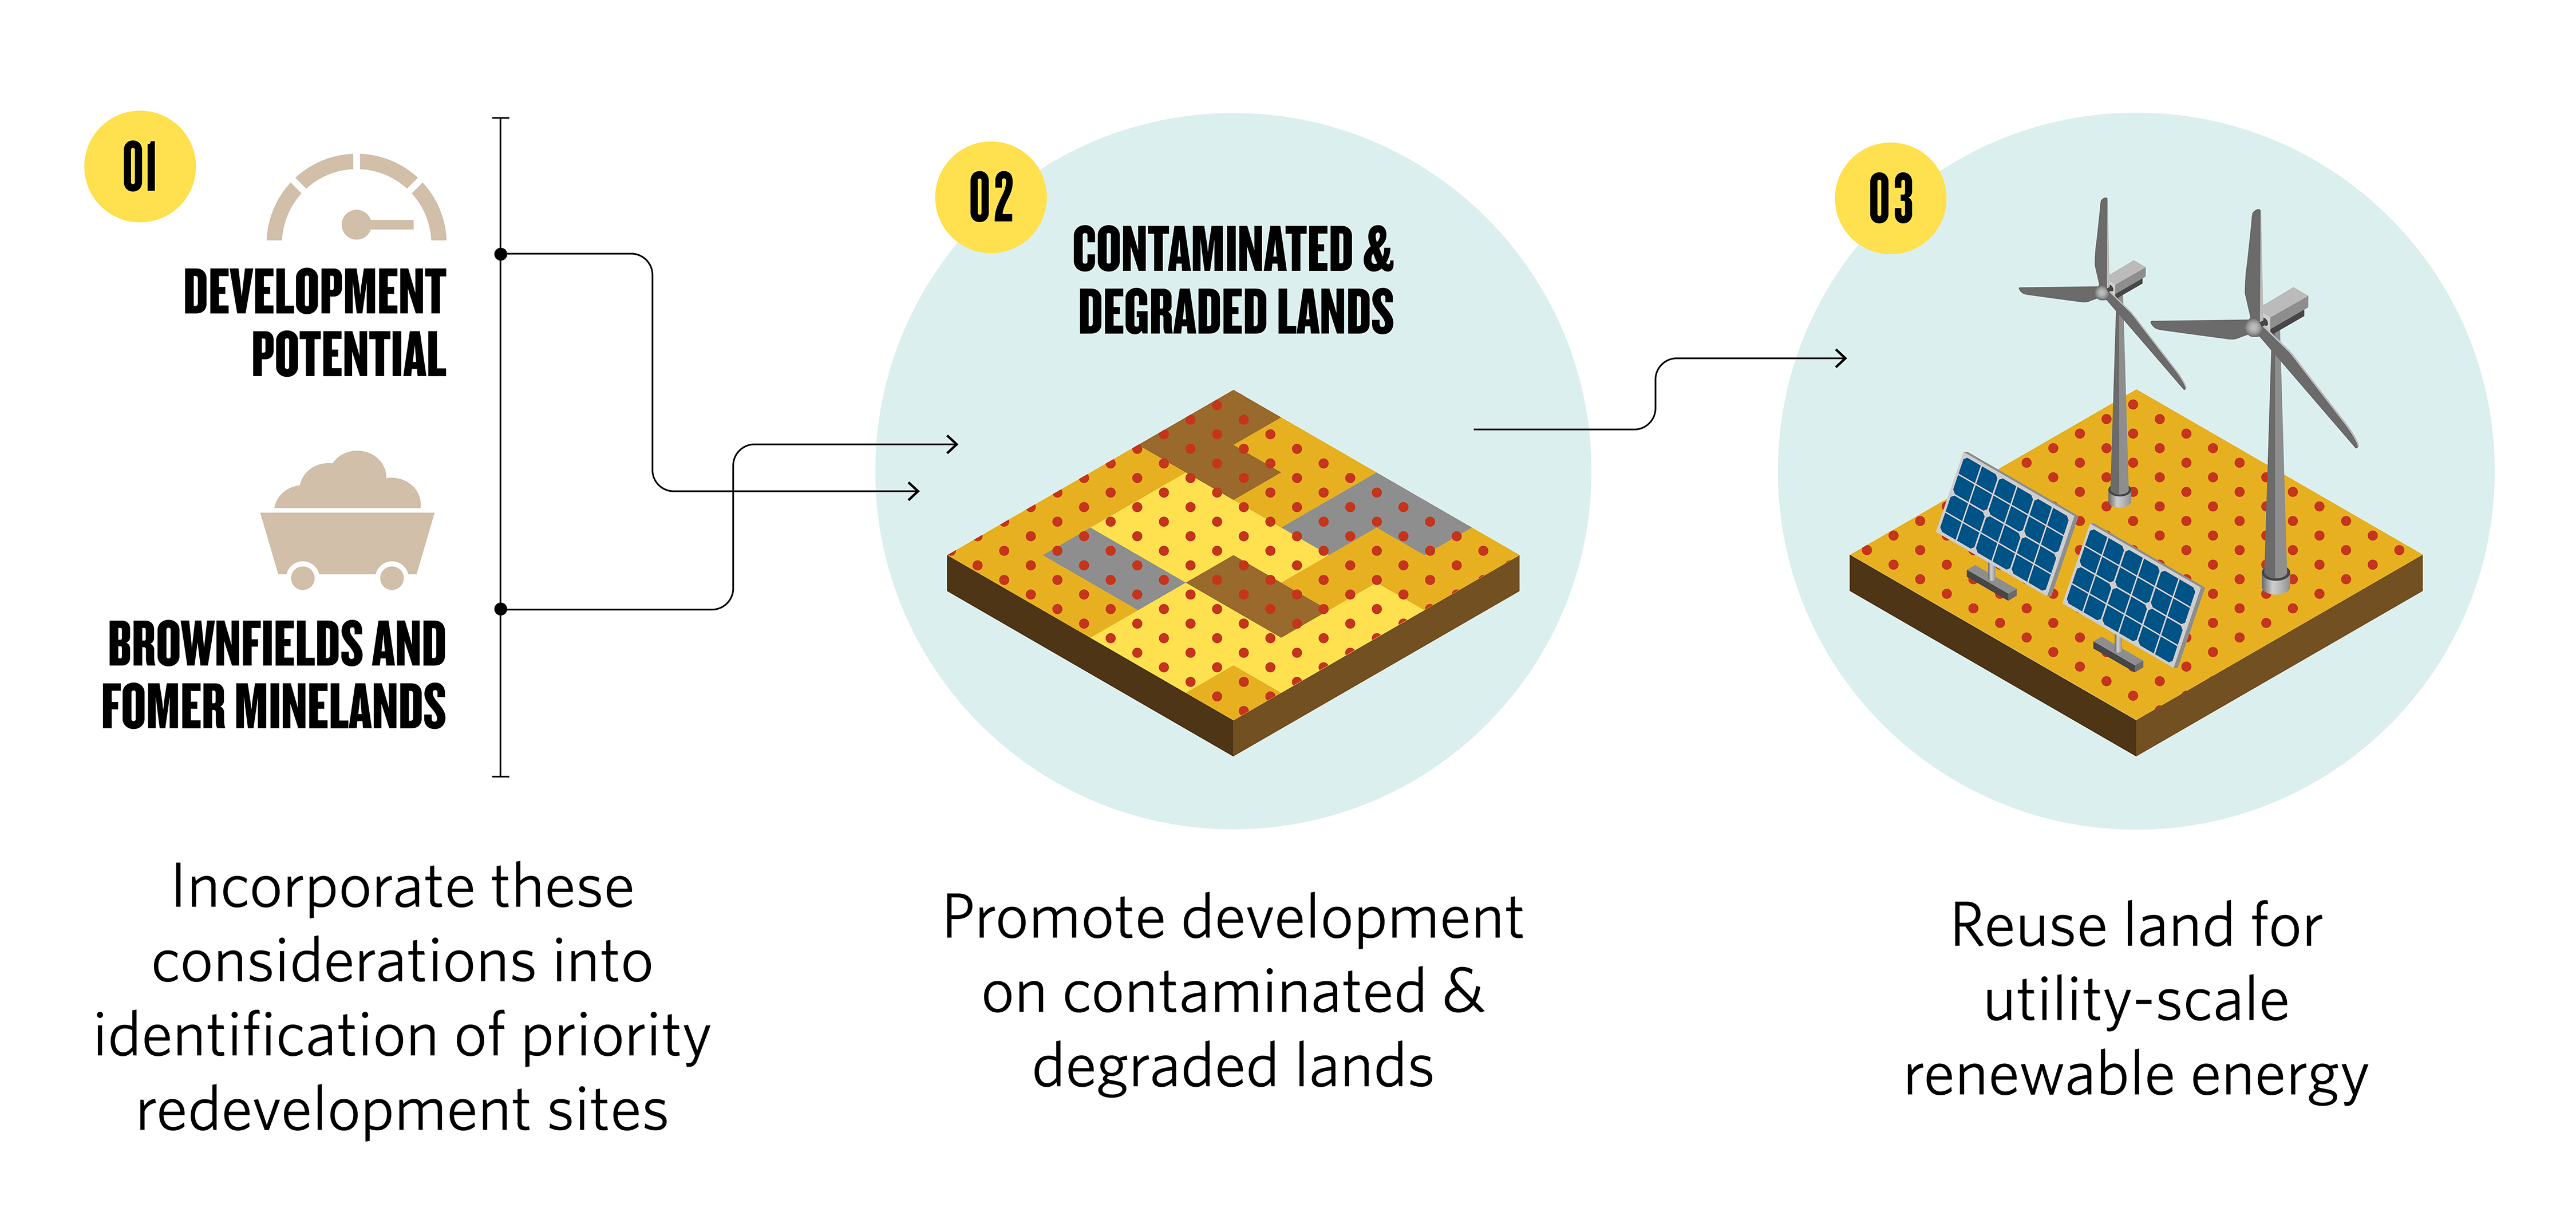 a flowchart showing contaminated lands being considered for utility-scale renewable energy projects